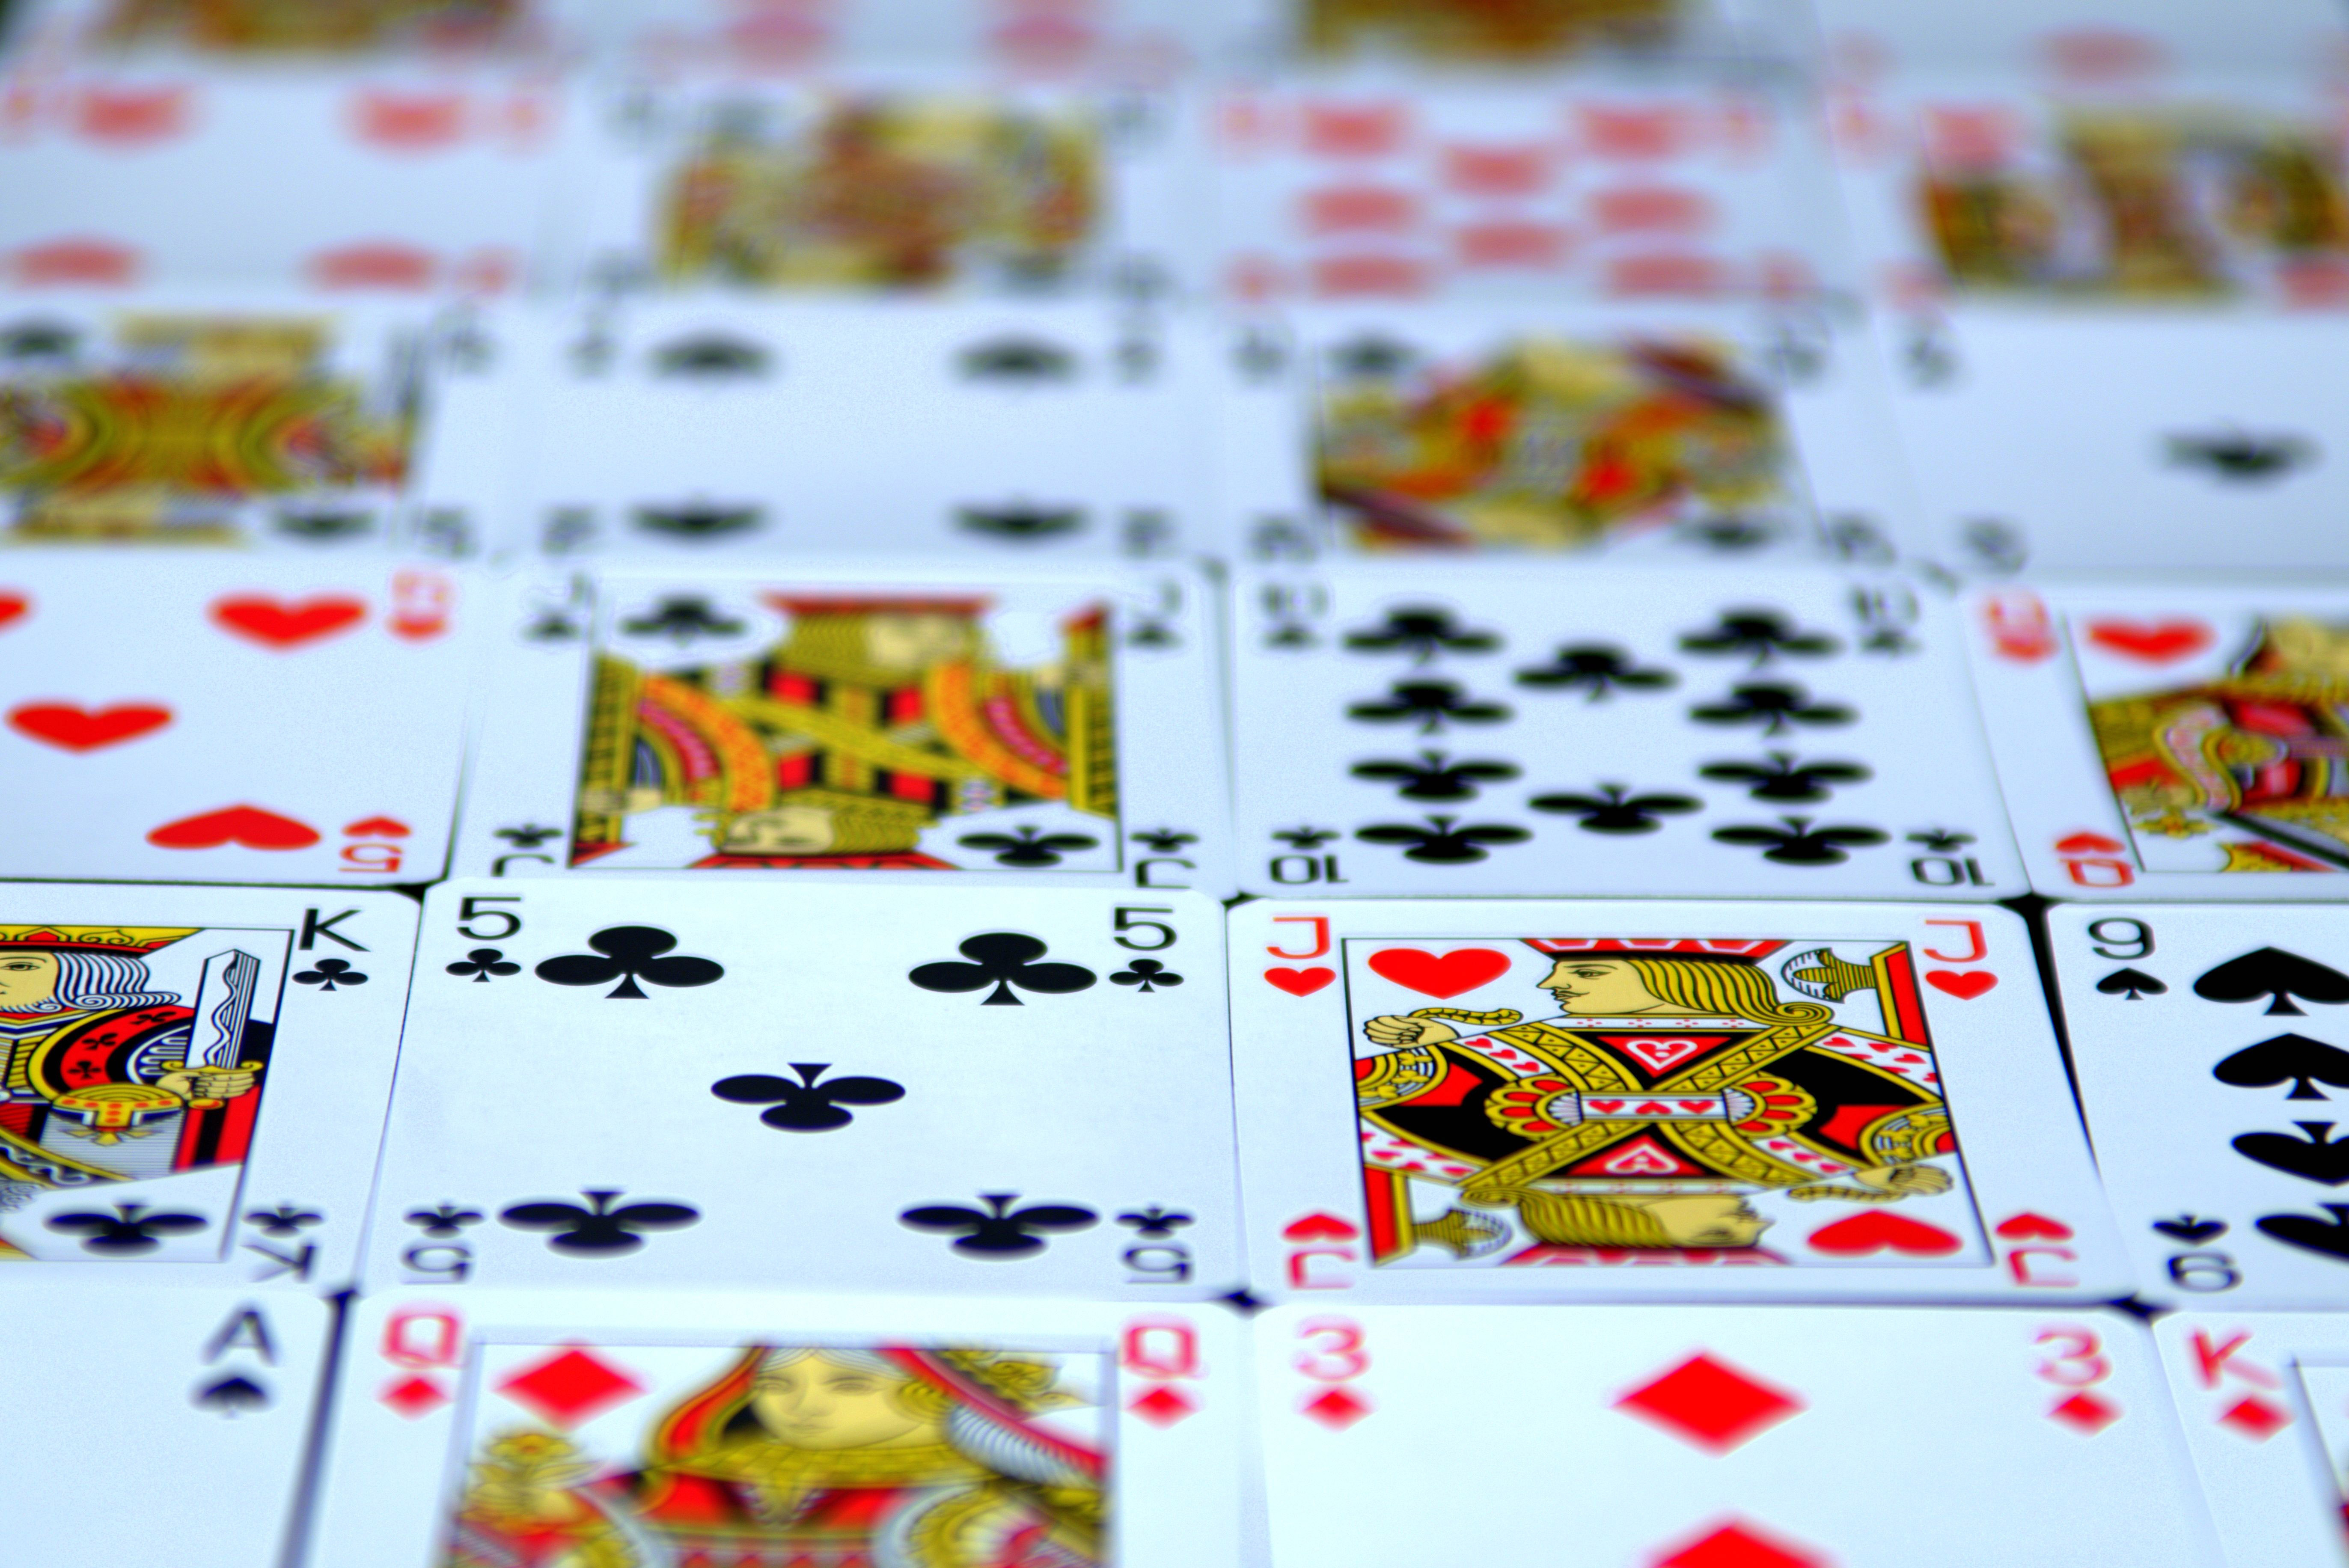 poker-cards-all-laid-out-on-the-table